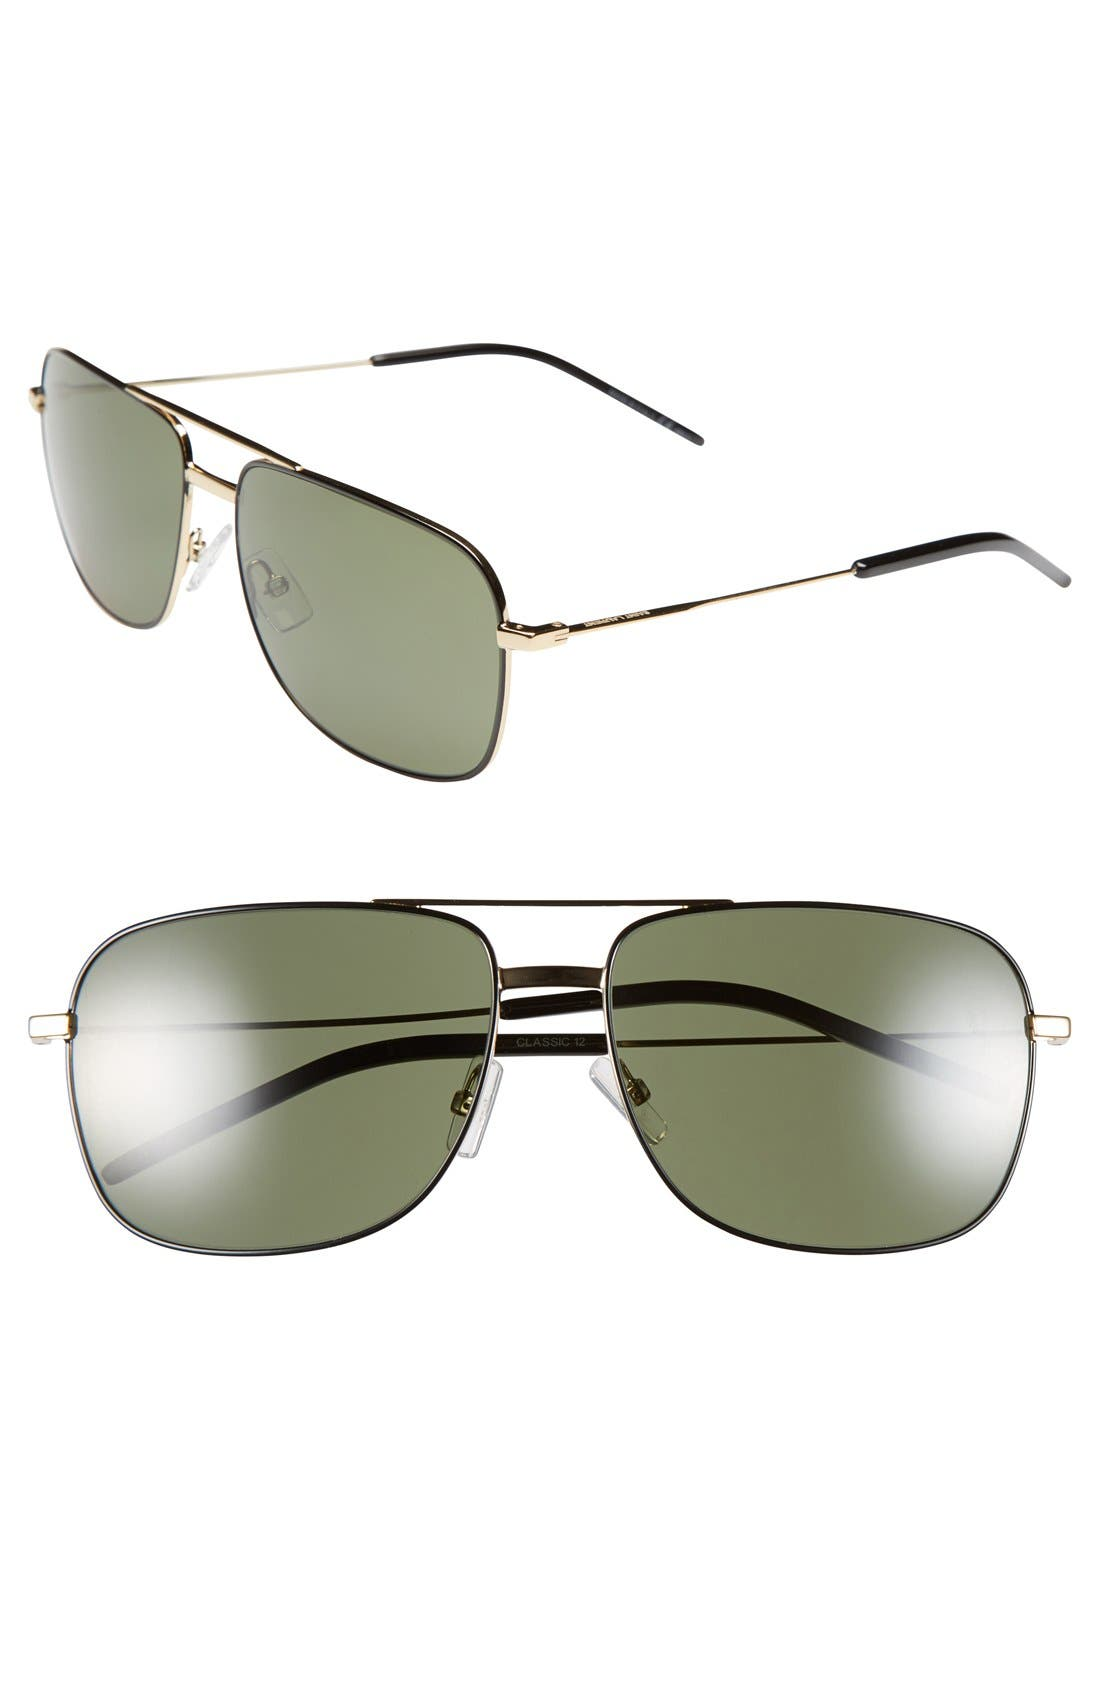 Main Image - Saint Laurent 59mm Navigator Sunglasses